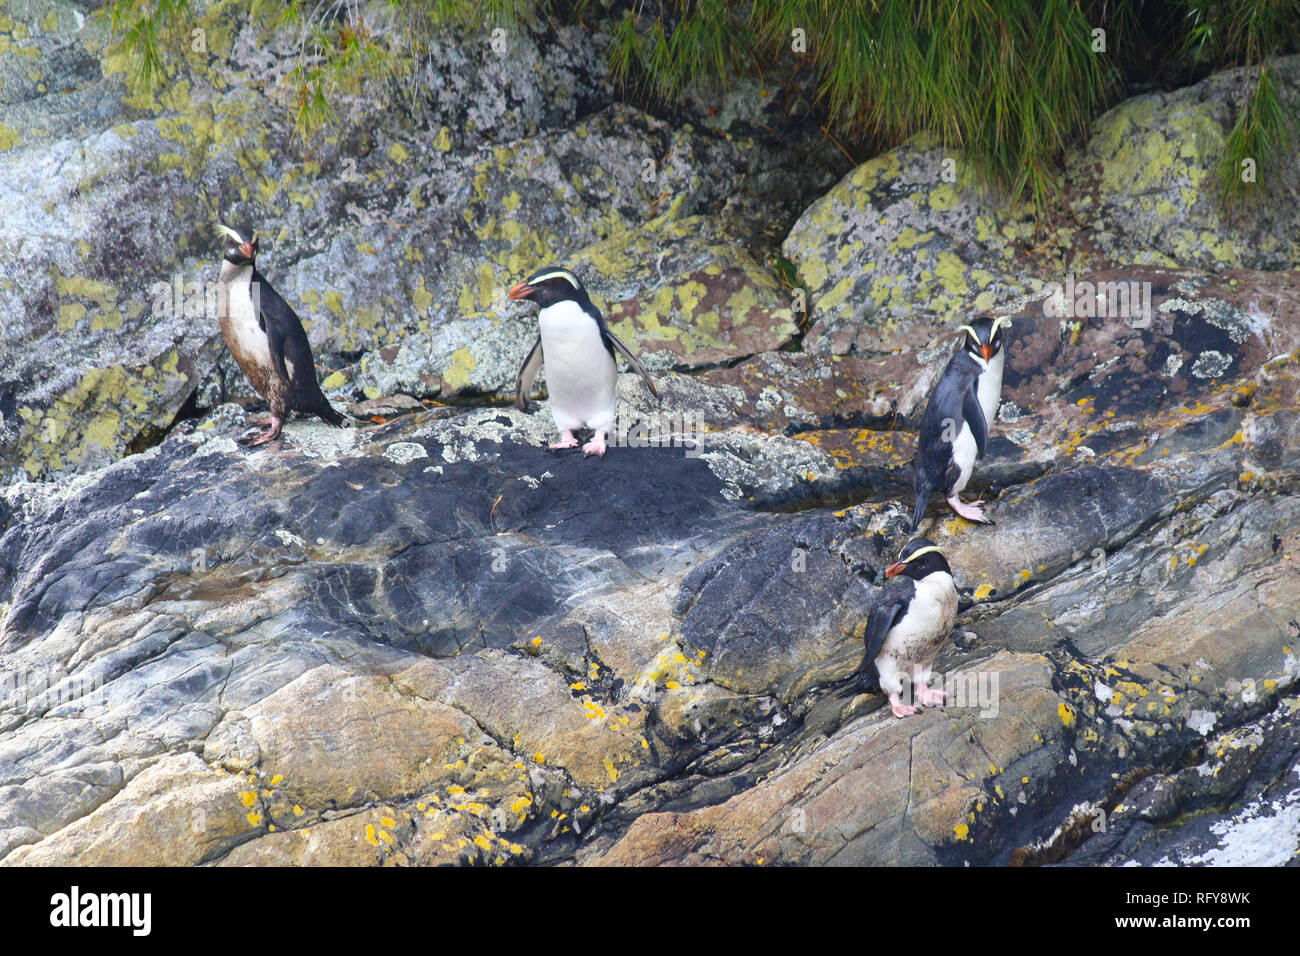 Fiordland penguin (Eudyptes pachyrhynchus), Doubtful Sound, Fiordland National Park, South Island, New Zealand Stock Photo